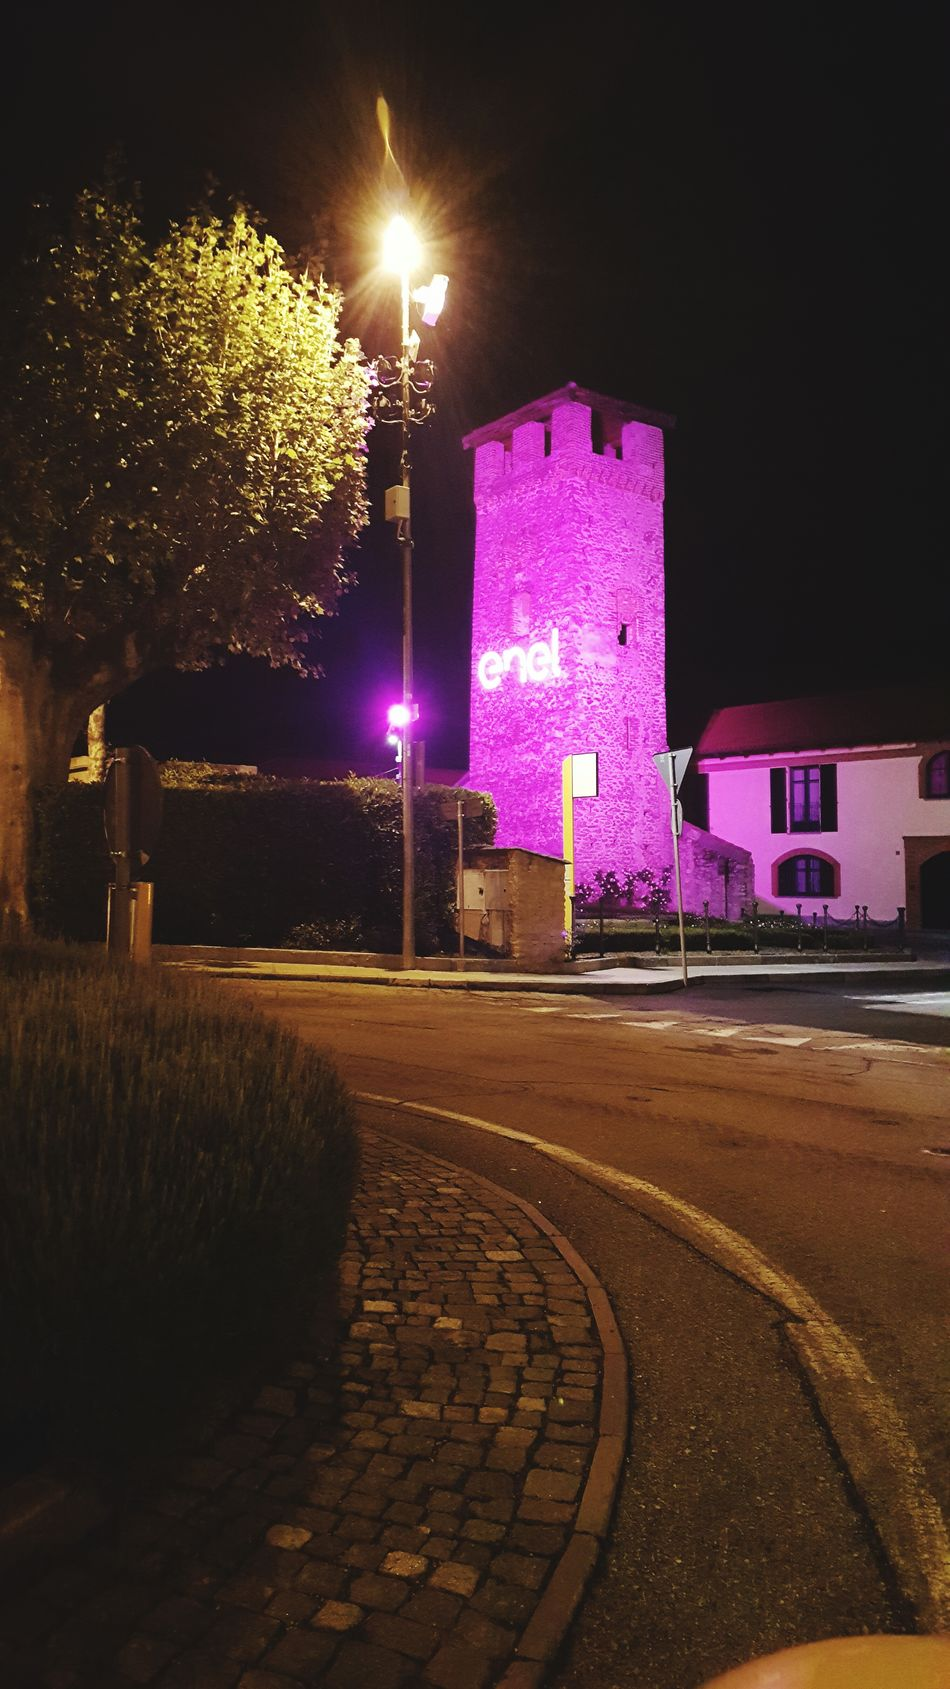 Waiting for the Giroditalia2016Taking Photos Promoter Enel Pink Light Old Tower Square Countryside